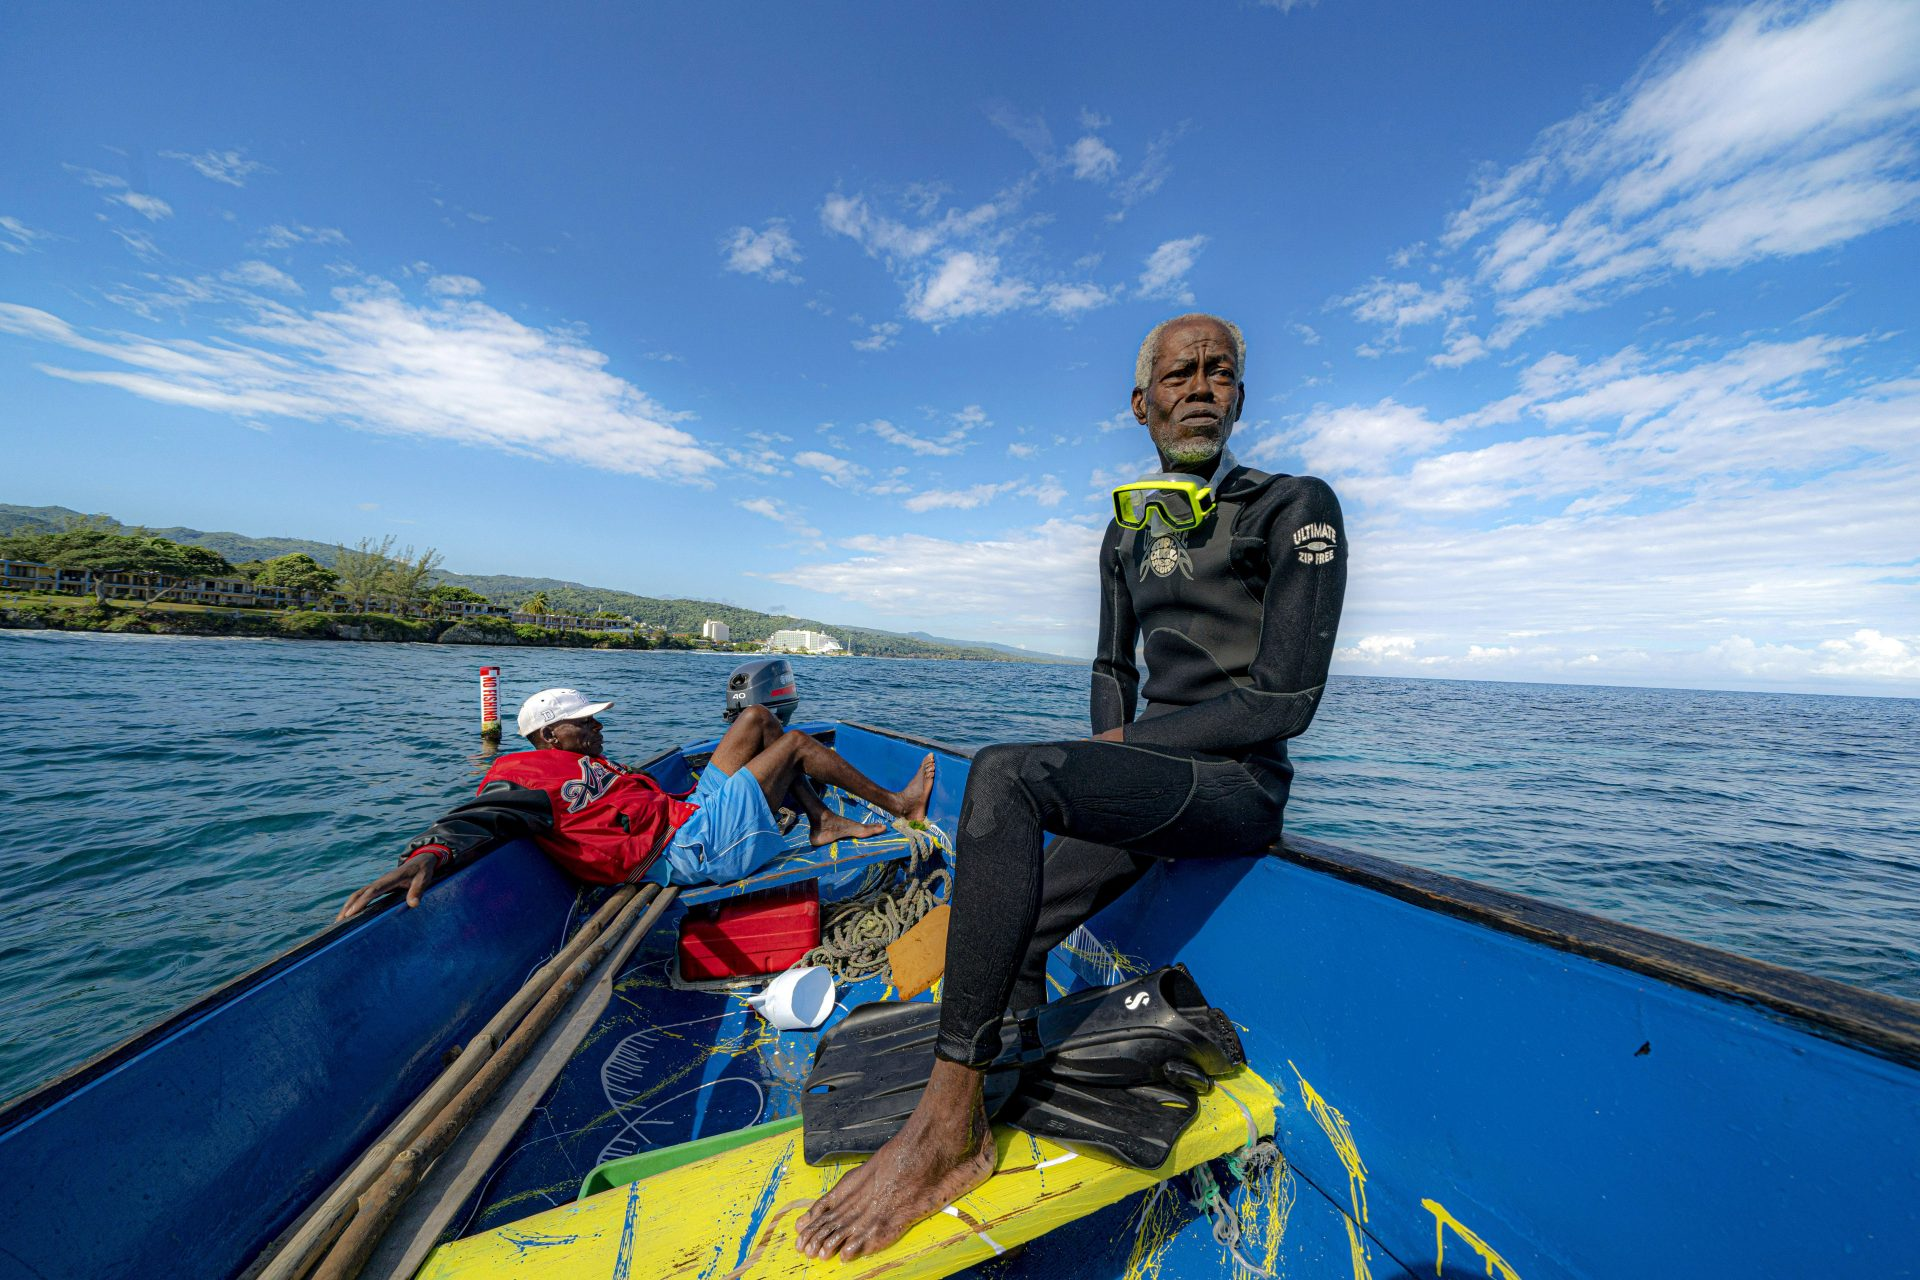 Everton Simpson, right, sits on a boat in-between dives on the White River Fish Sanctuary with Mark Lobban, left, Monday, Feb. 11, 2019, in Ocho Rios, Jamaica. More than a dozen grassroots-run fish sanctuaries and coral nurseries have sprung up on the island in the past decade.